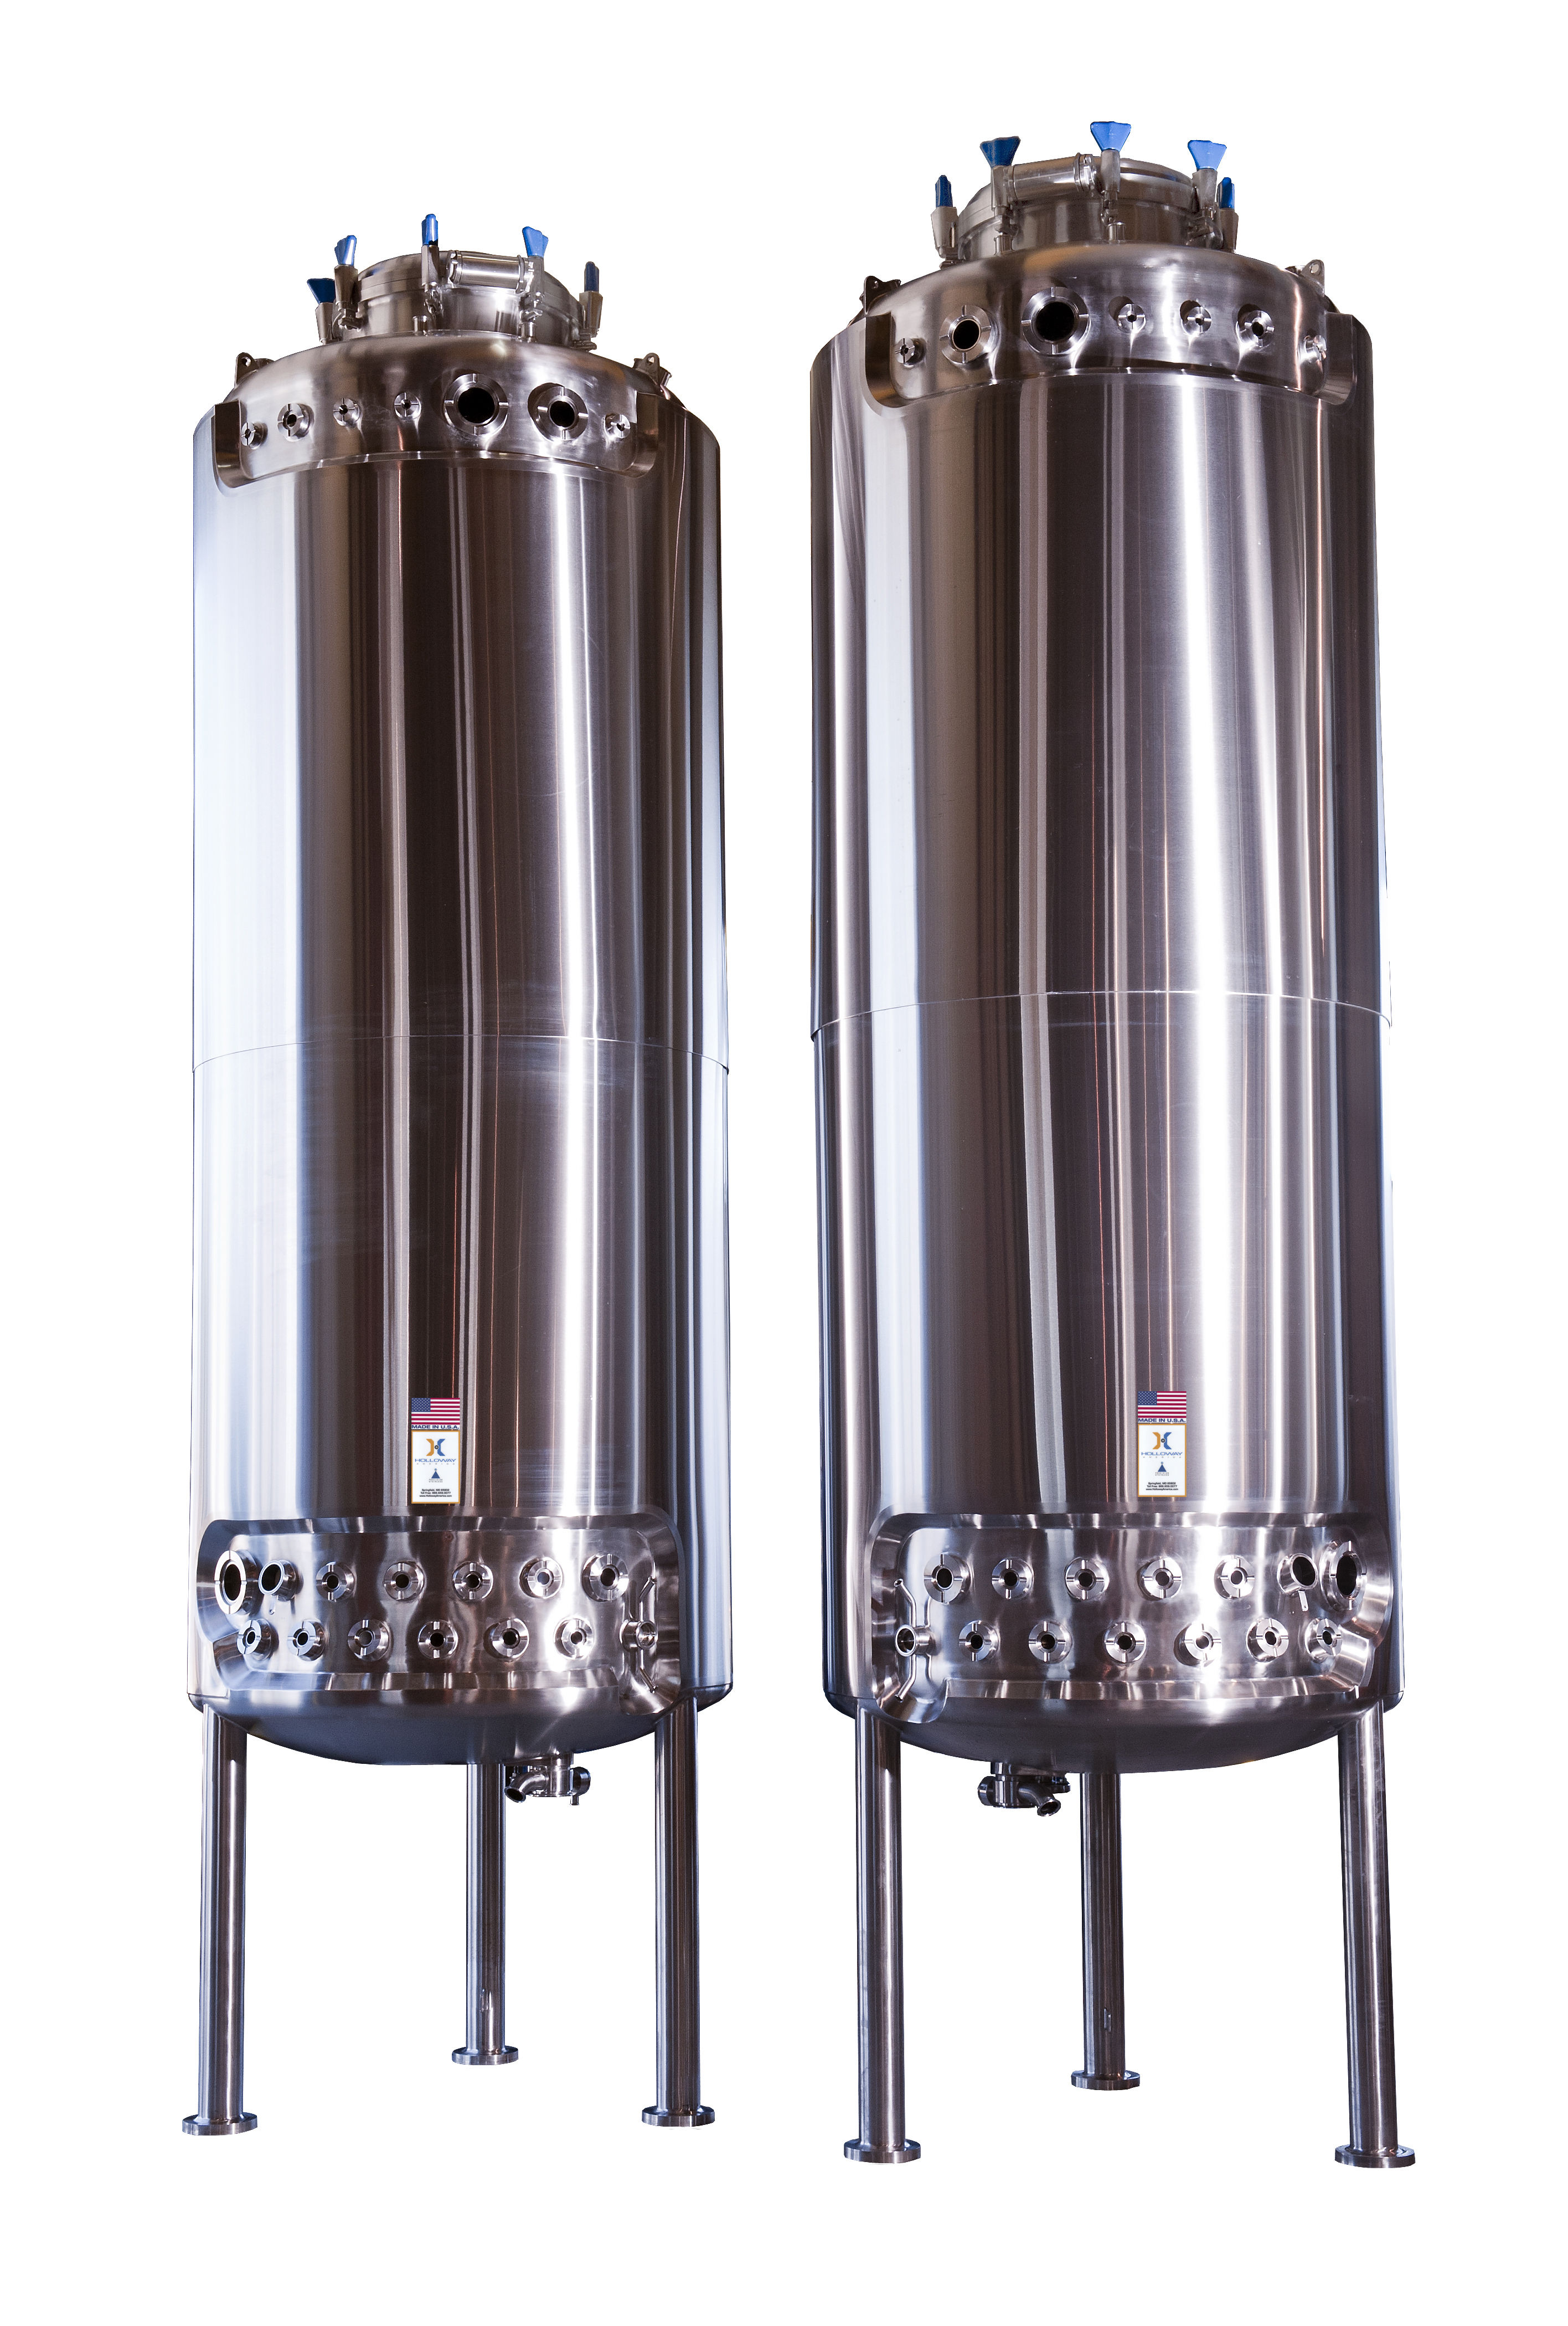 Stainless steel tanks and pressure vessels like these two fermentation vessels are widely trusted.